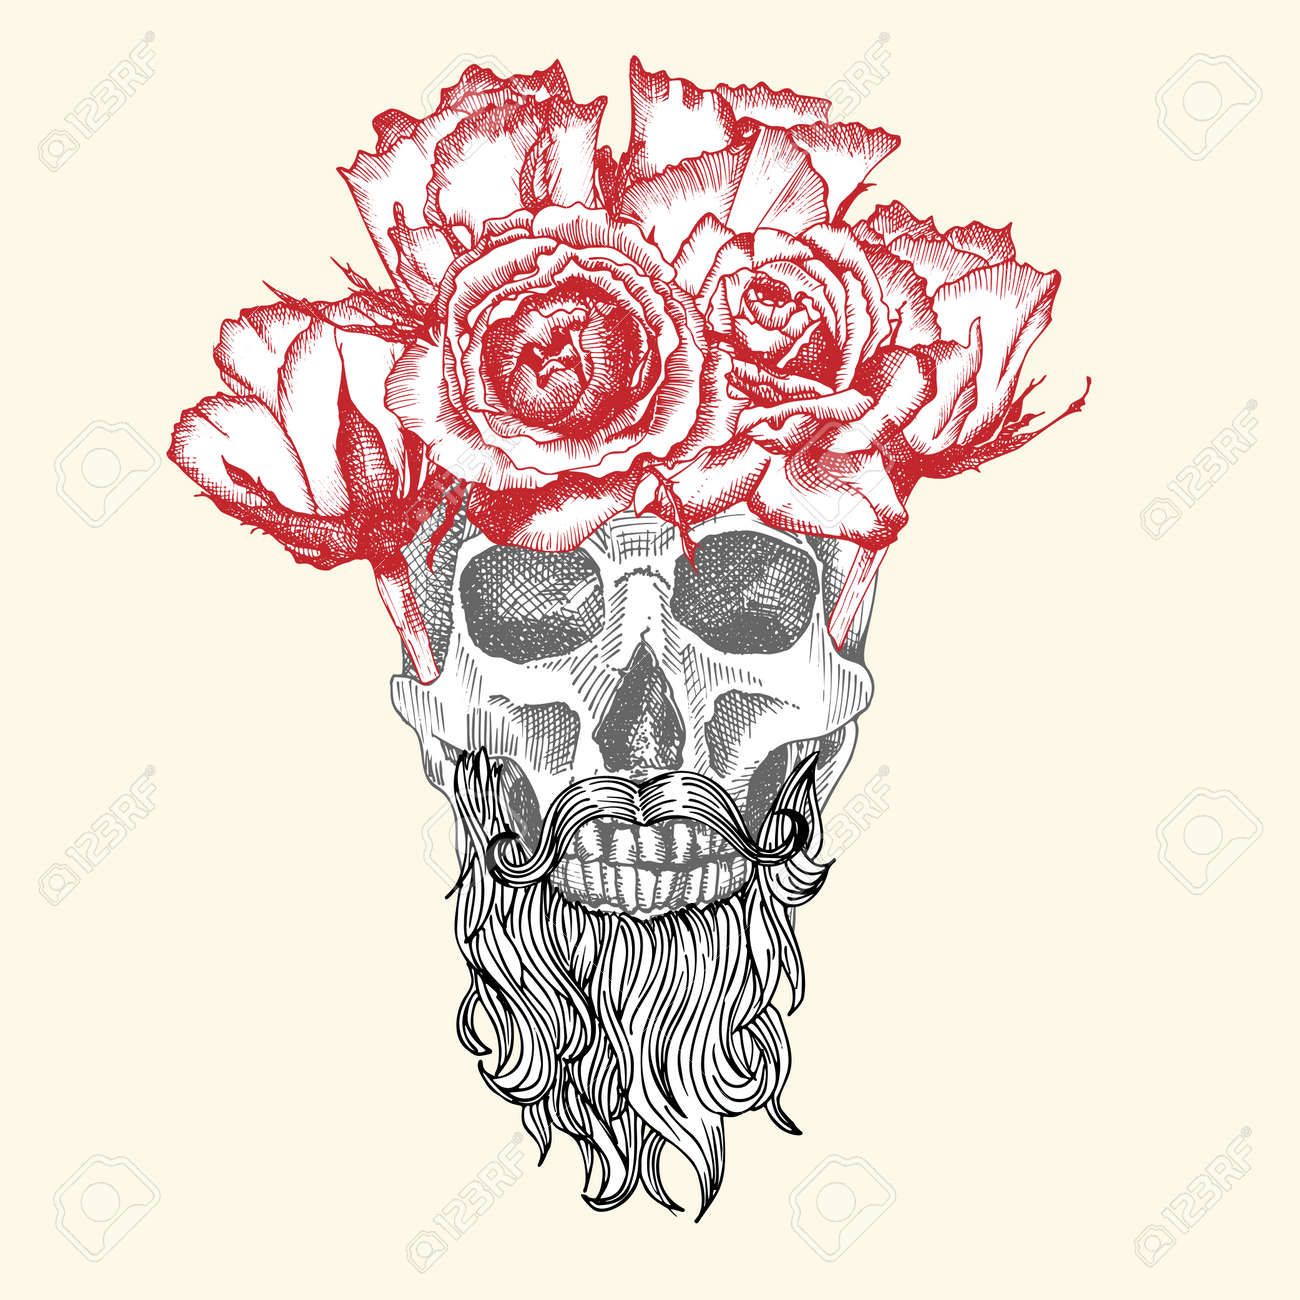 Hand drawn sketch human skull with beard and mustache in wreath of flowers. Red roses Funny character Black graphic Engraving art isolated on white background. Vintage style. Vector - 161481833